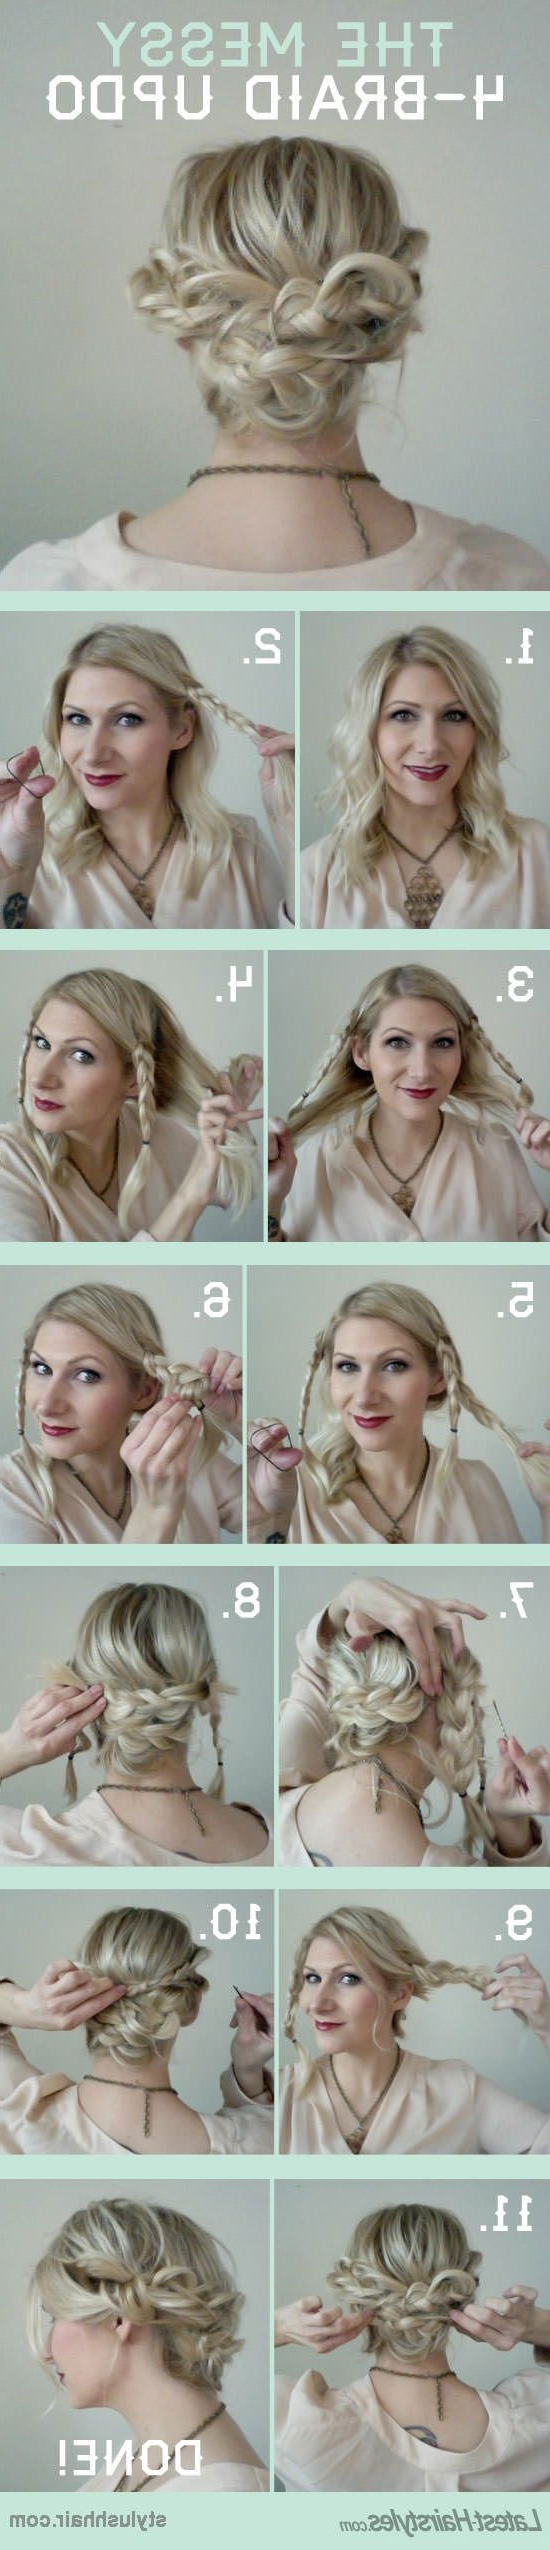 15 Cute And Easy Hairstyle Tutorials For Medium Length Hair – Gurl Throughout Casual Updos For Shoulder Length Hair (View 13 of 15)